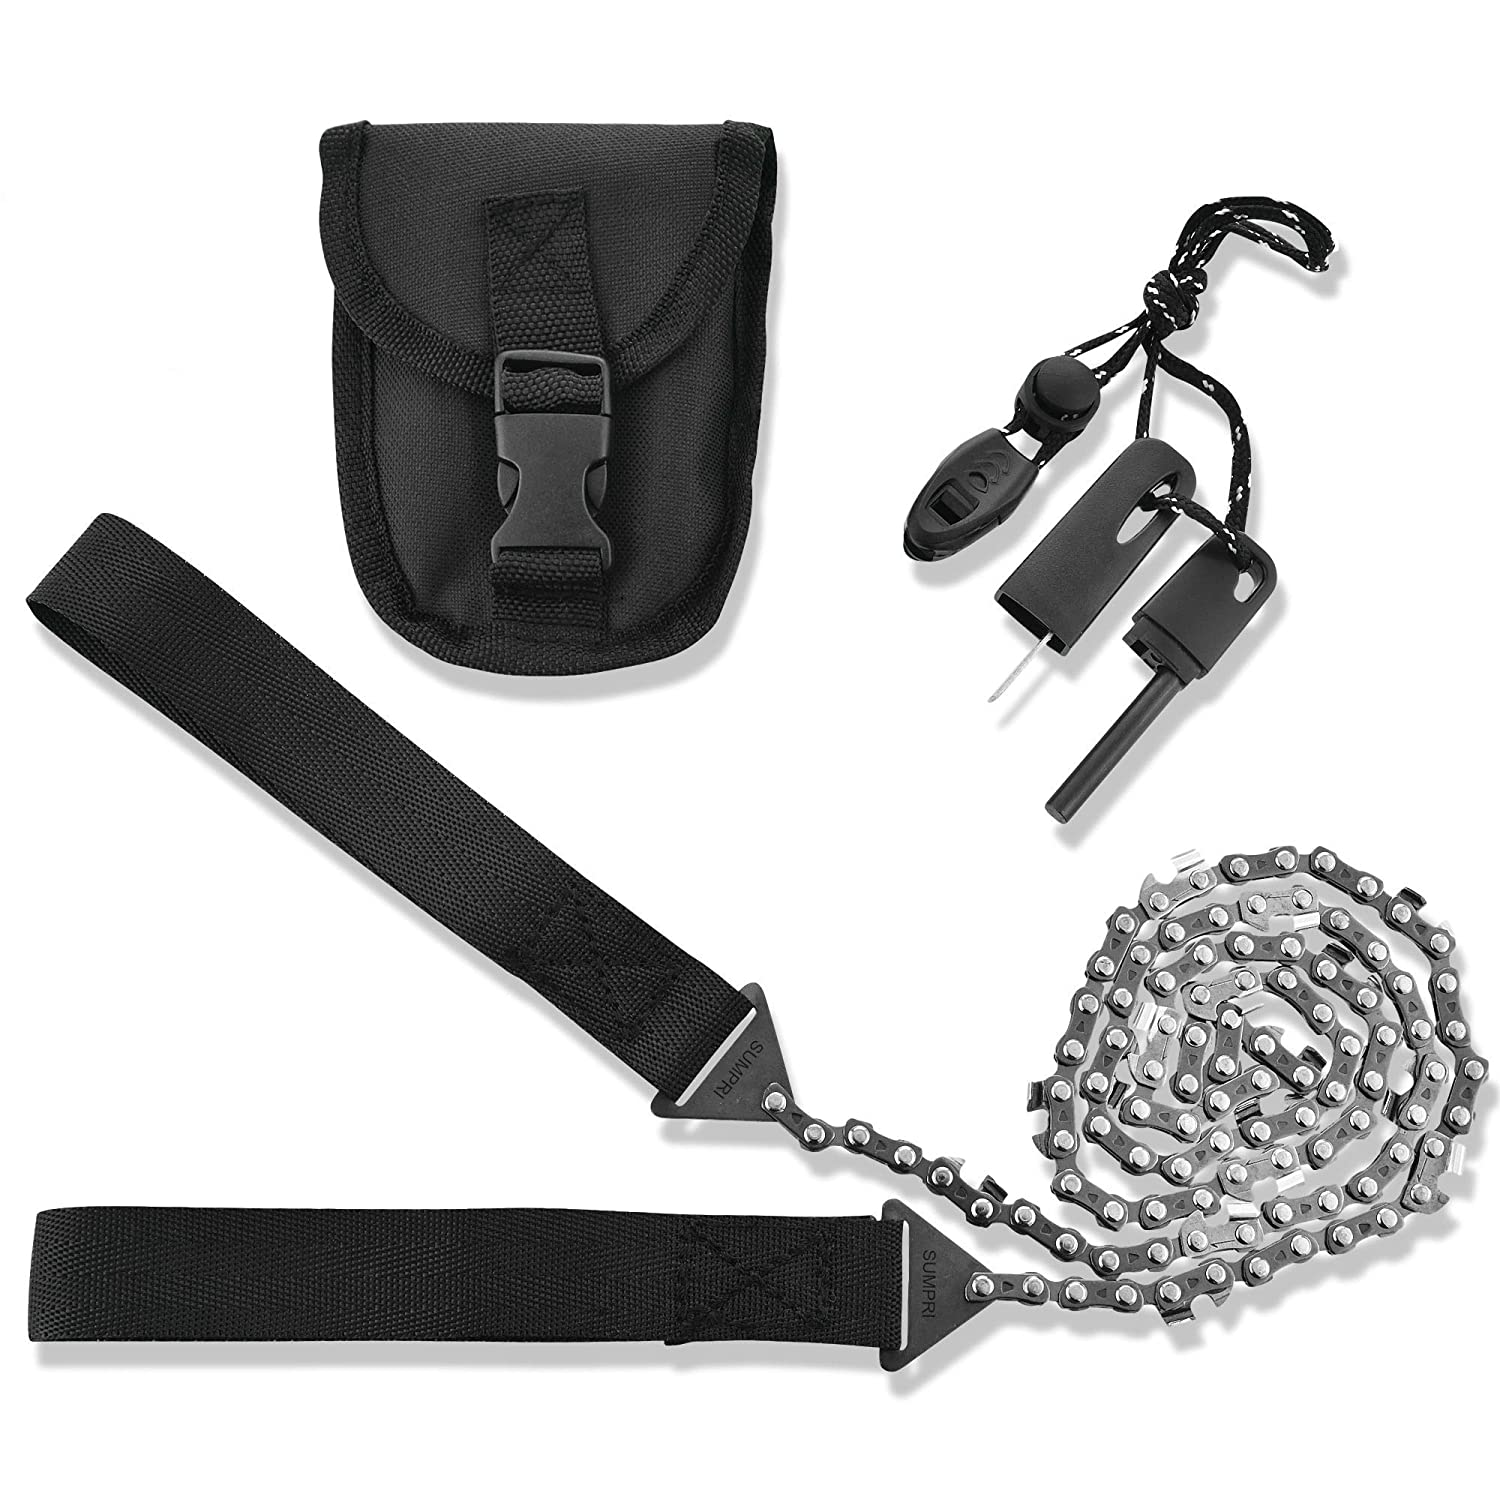 SUMPRI Pocket Chainsaw Survival Gear -36 Inch Long Chain Free Fire Starter Kit -Compact Hand Saw for Trees -Folding Hand Saw Tool for Camping, Hunting Emergency Kit -Backpacking Gadget Camp Saw